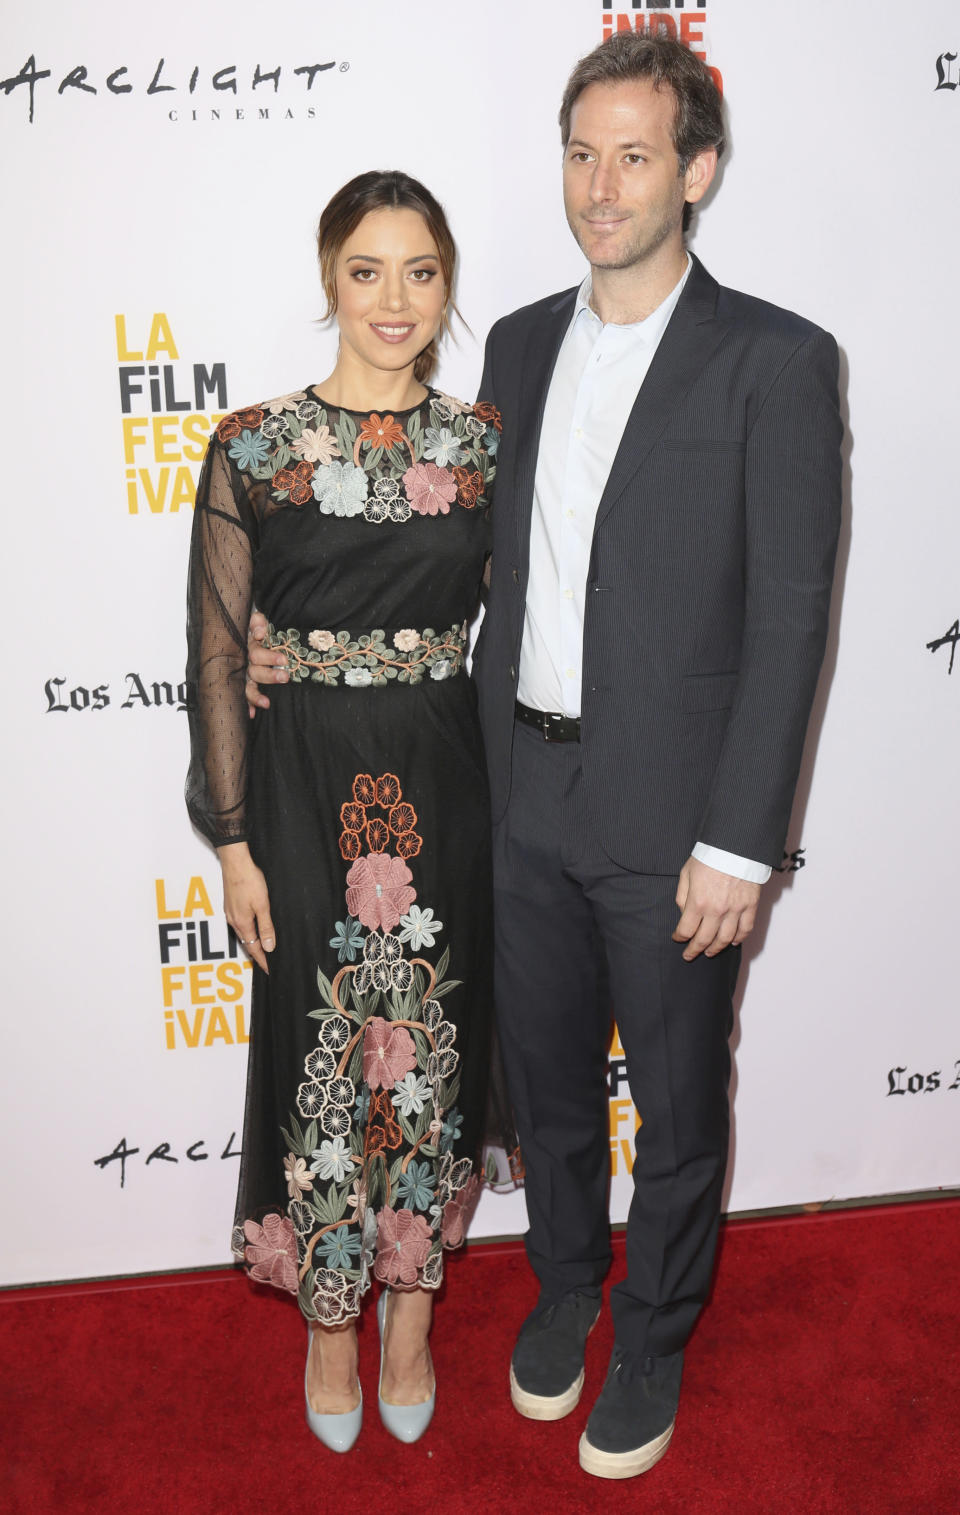 """FILE - In this Monday, June 19, 2017, file photo, Aubrey Plaza, left, and Jeff Baena arrive at the premiere of """"The Little Hours"""" at the 2017 Los Angeles Film Festival in Culver City, Calif. Plaza has married her longtime boyfriend, director and screenwriter Baena. The """"Parks and Recreation"""" actor called Baena """"my husband"""" for the first time publicly Friday, May 7, 2021, in an Instagram post. (Photo by Willy Sanjuan/Invision/AP, File)"""